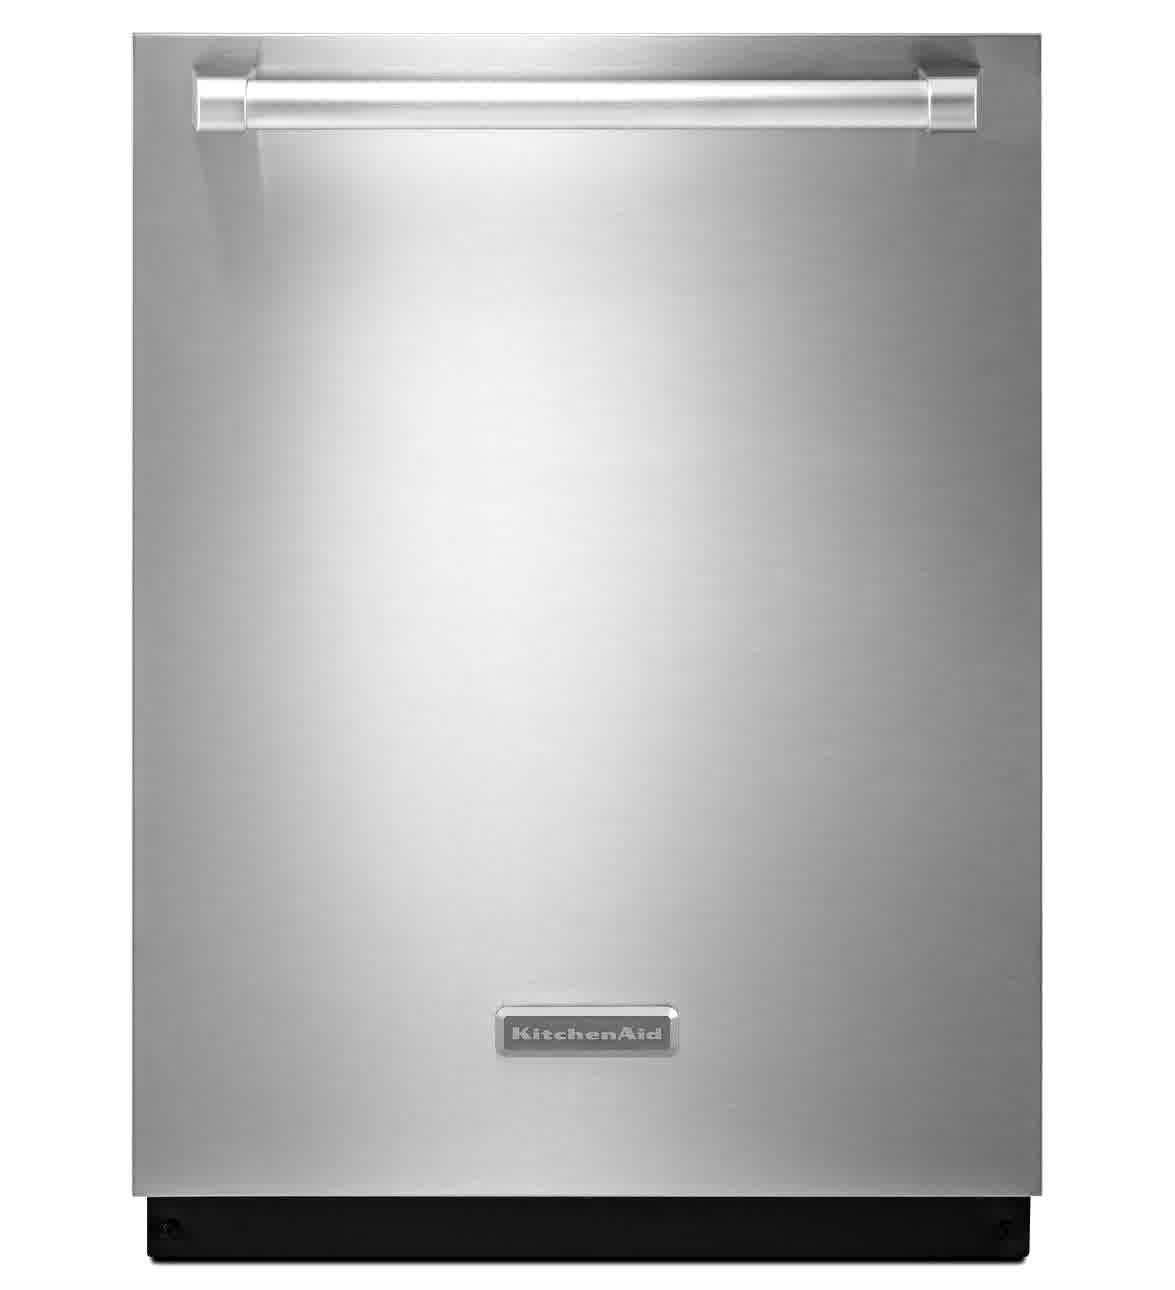 td what this kitchenaid year dishwasher bin is kitchen cgi stevet aid viewthread